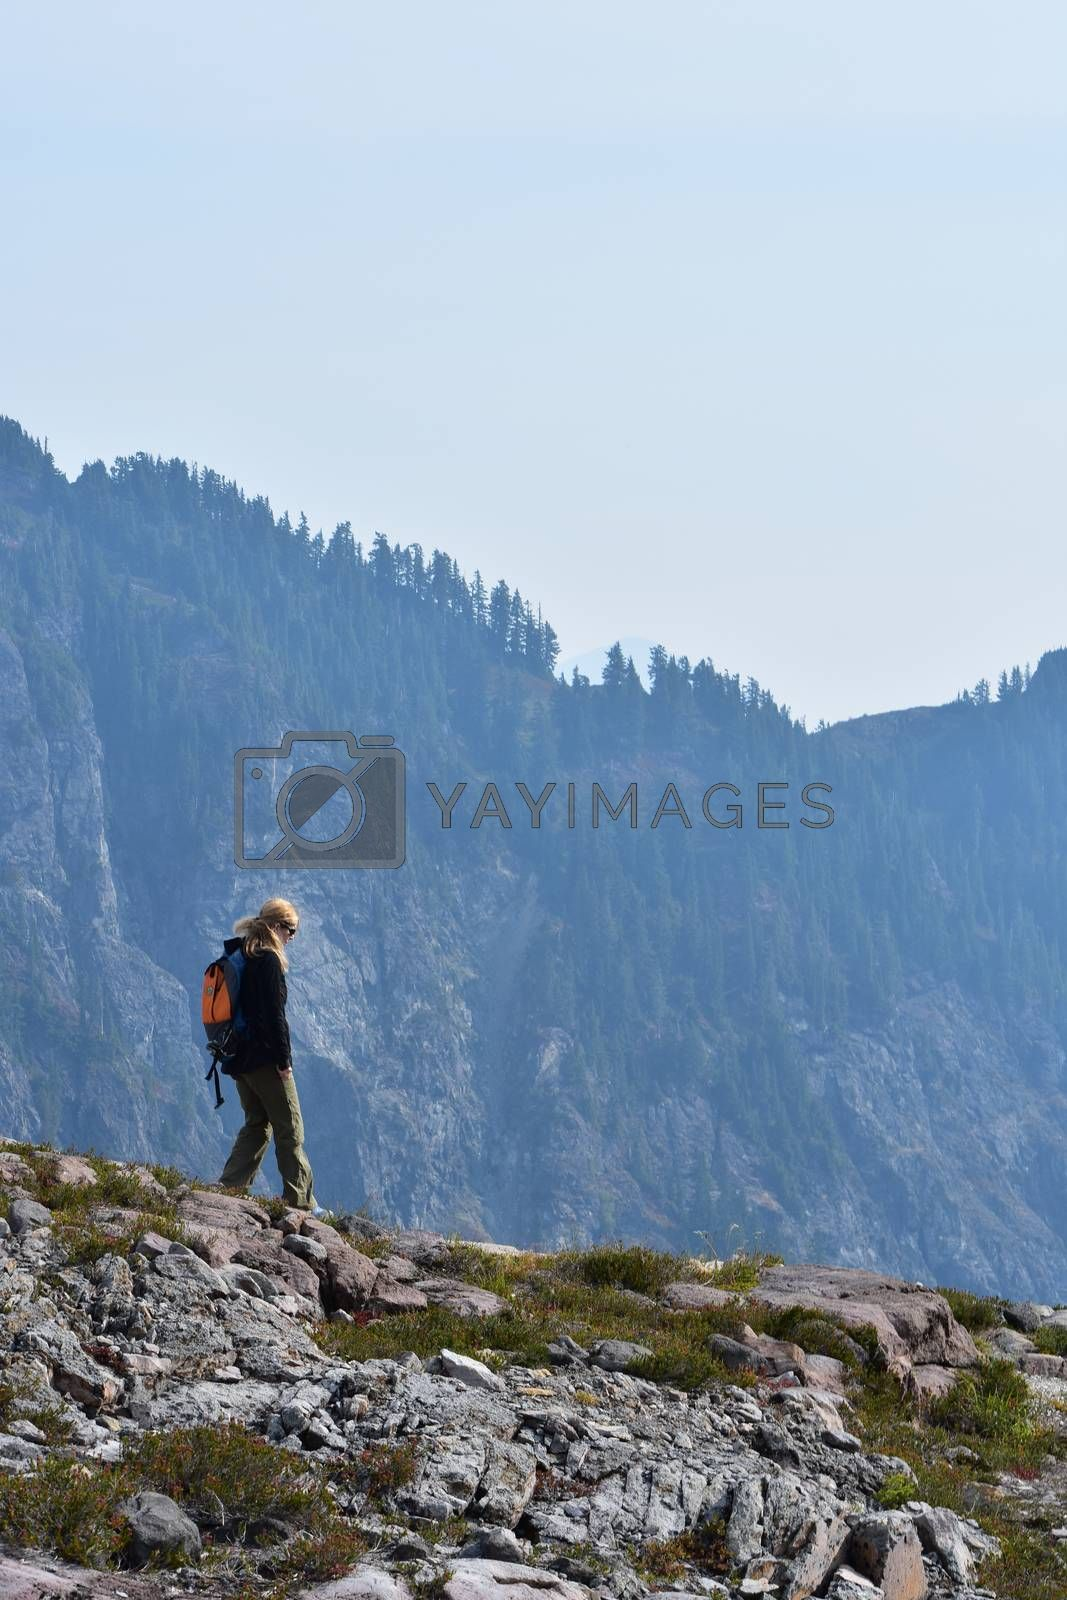 Woman hiking on rocky mountain range with landscape view of trees and nature